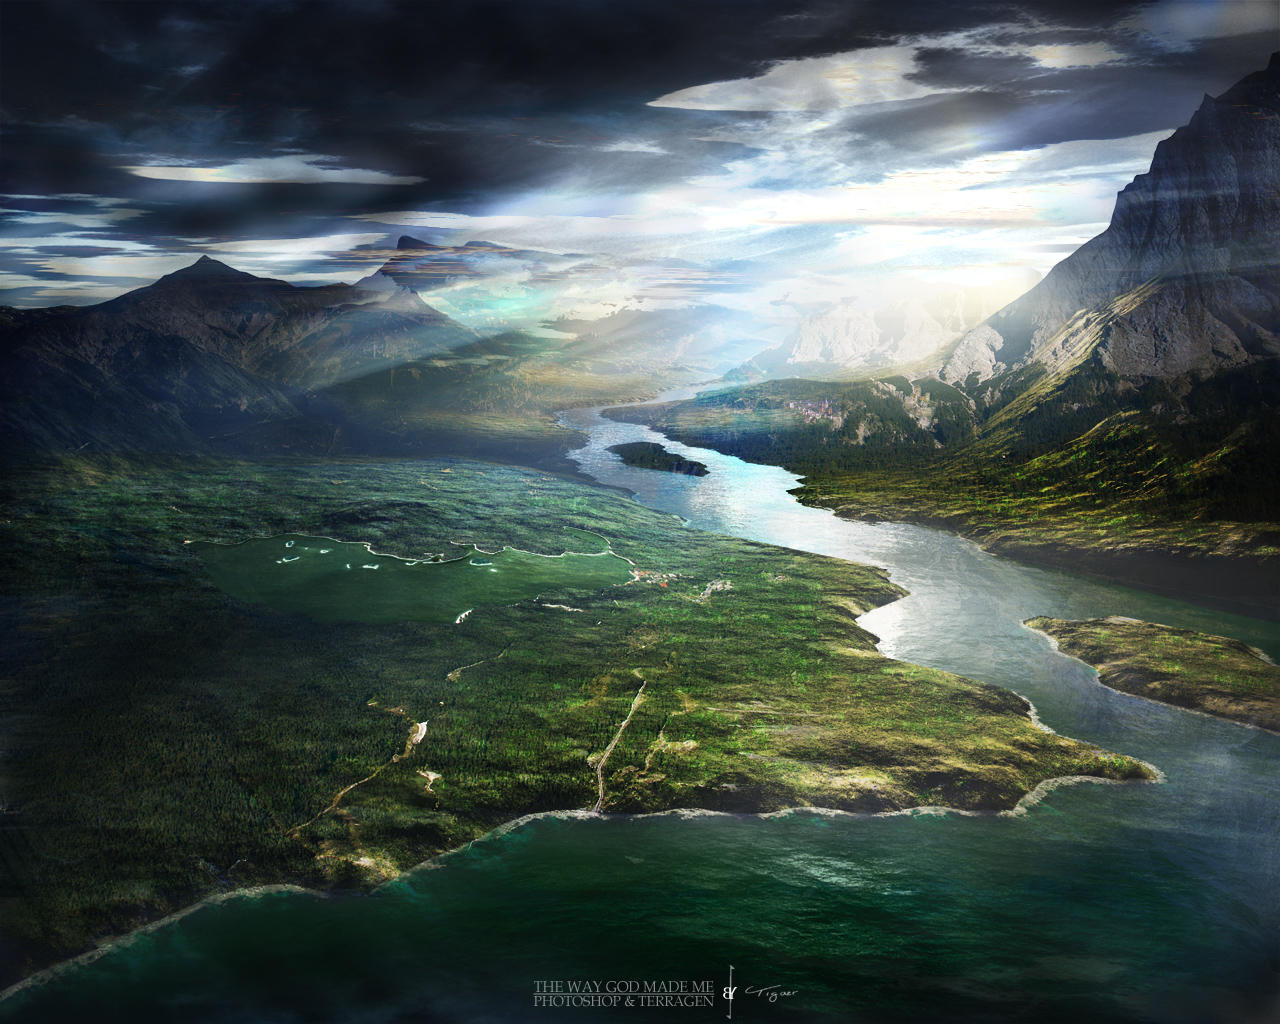 Terragen - The Way God Made Me by tigaer